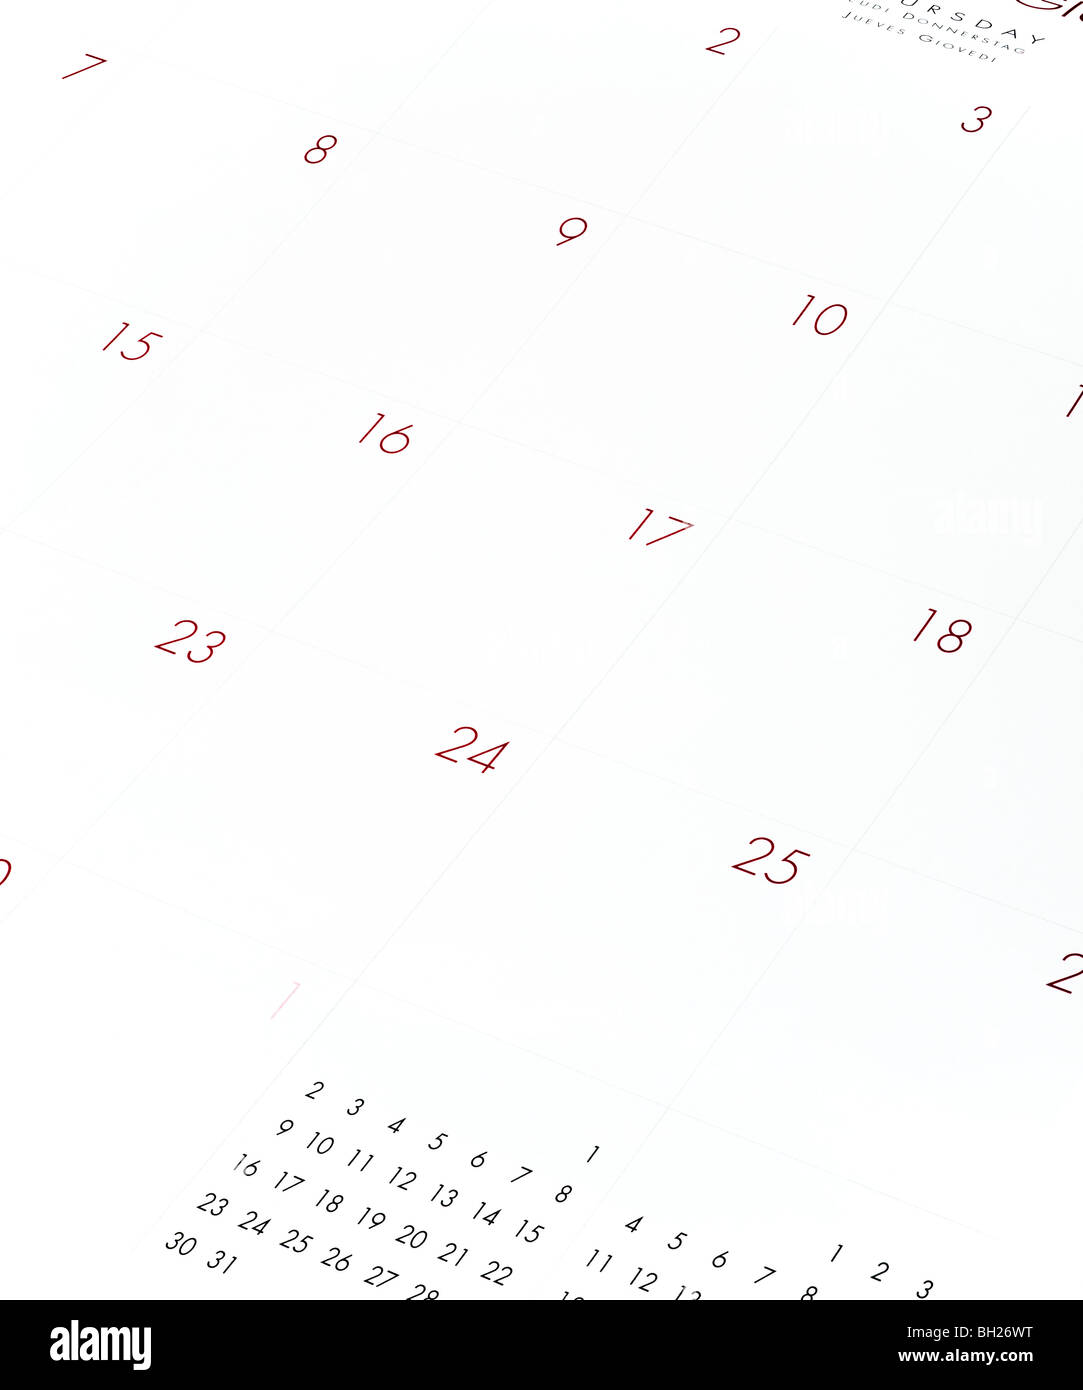 Calendrier vide page close up Photo Stock